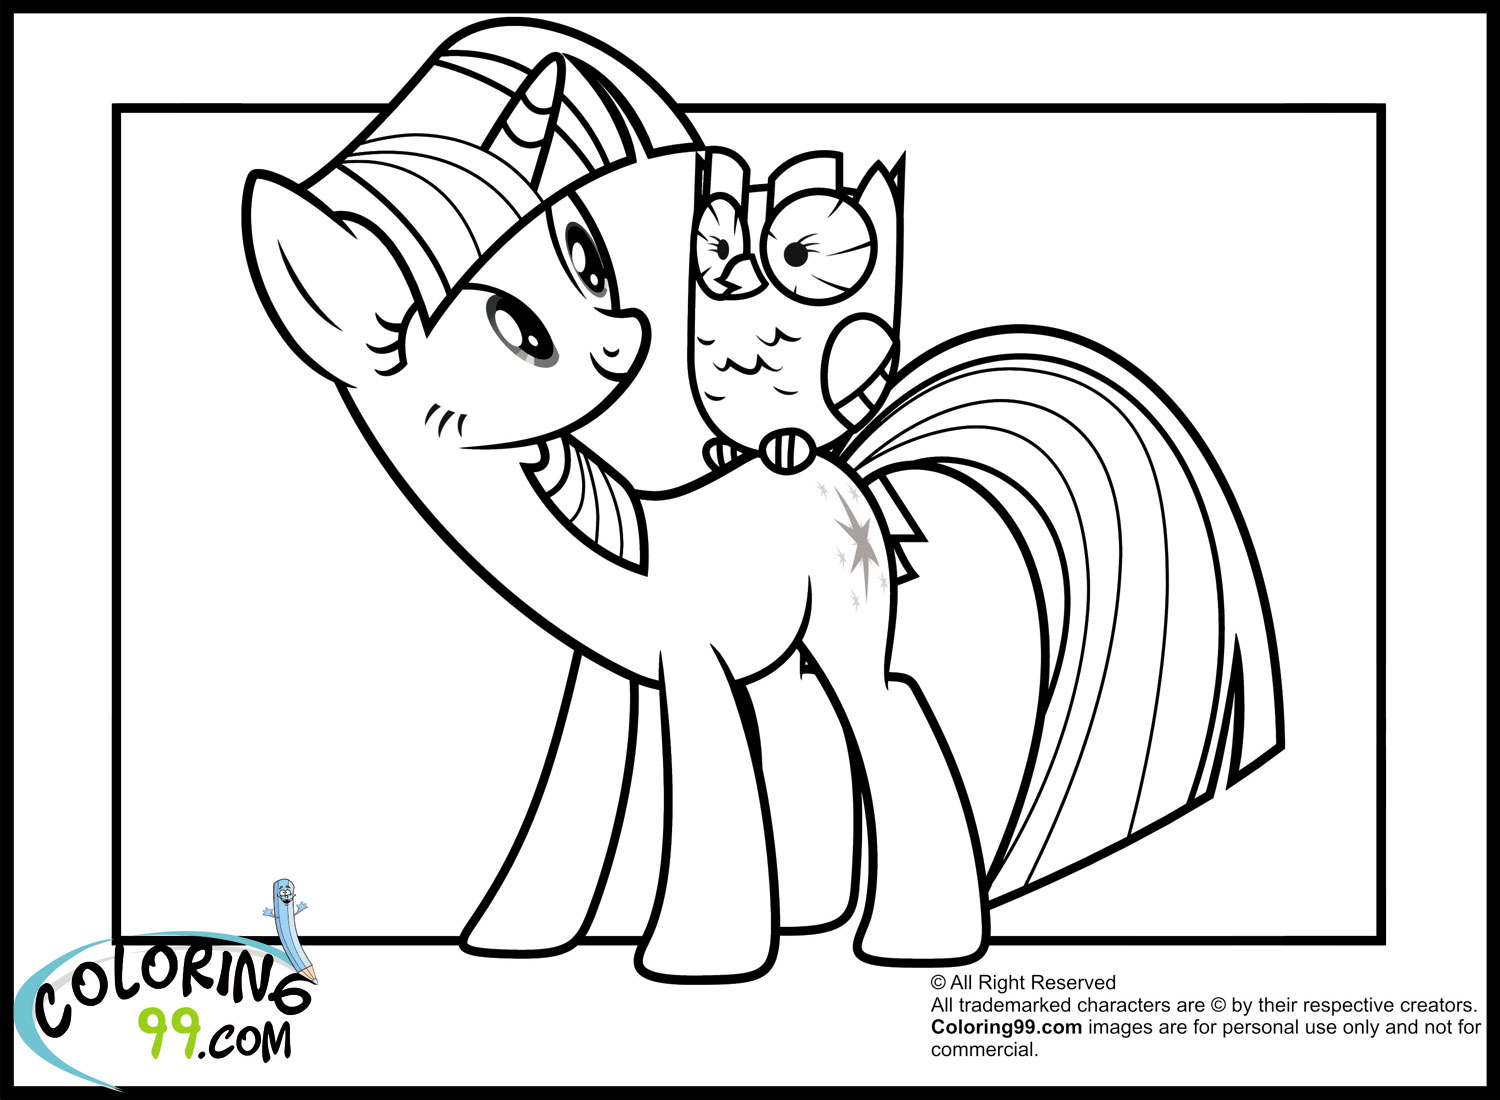 Coloring Pages Of Princess Twilight Sparkle : My little pony twilight sparkle coloring pages team colors